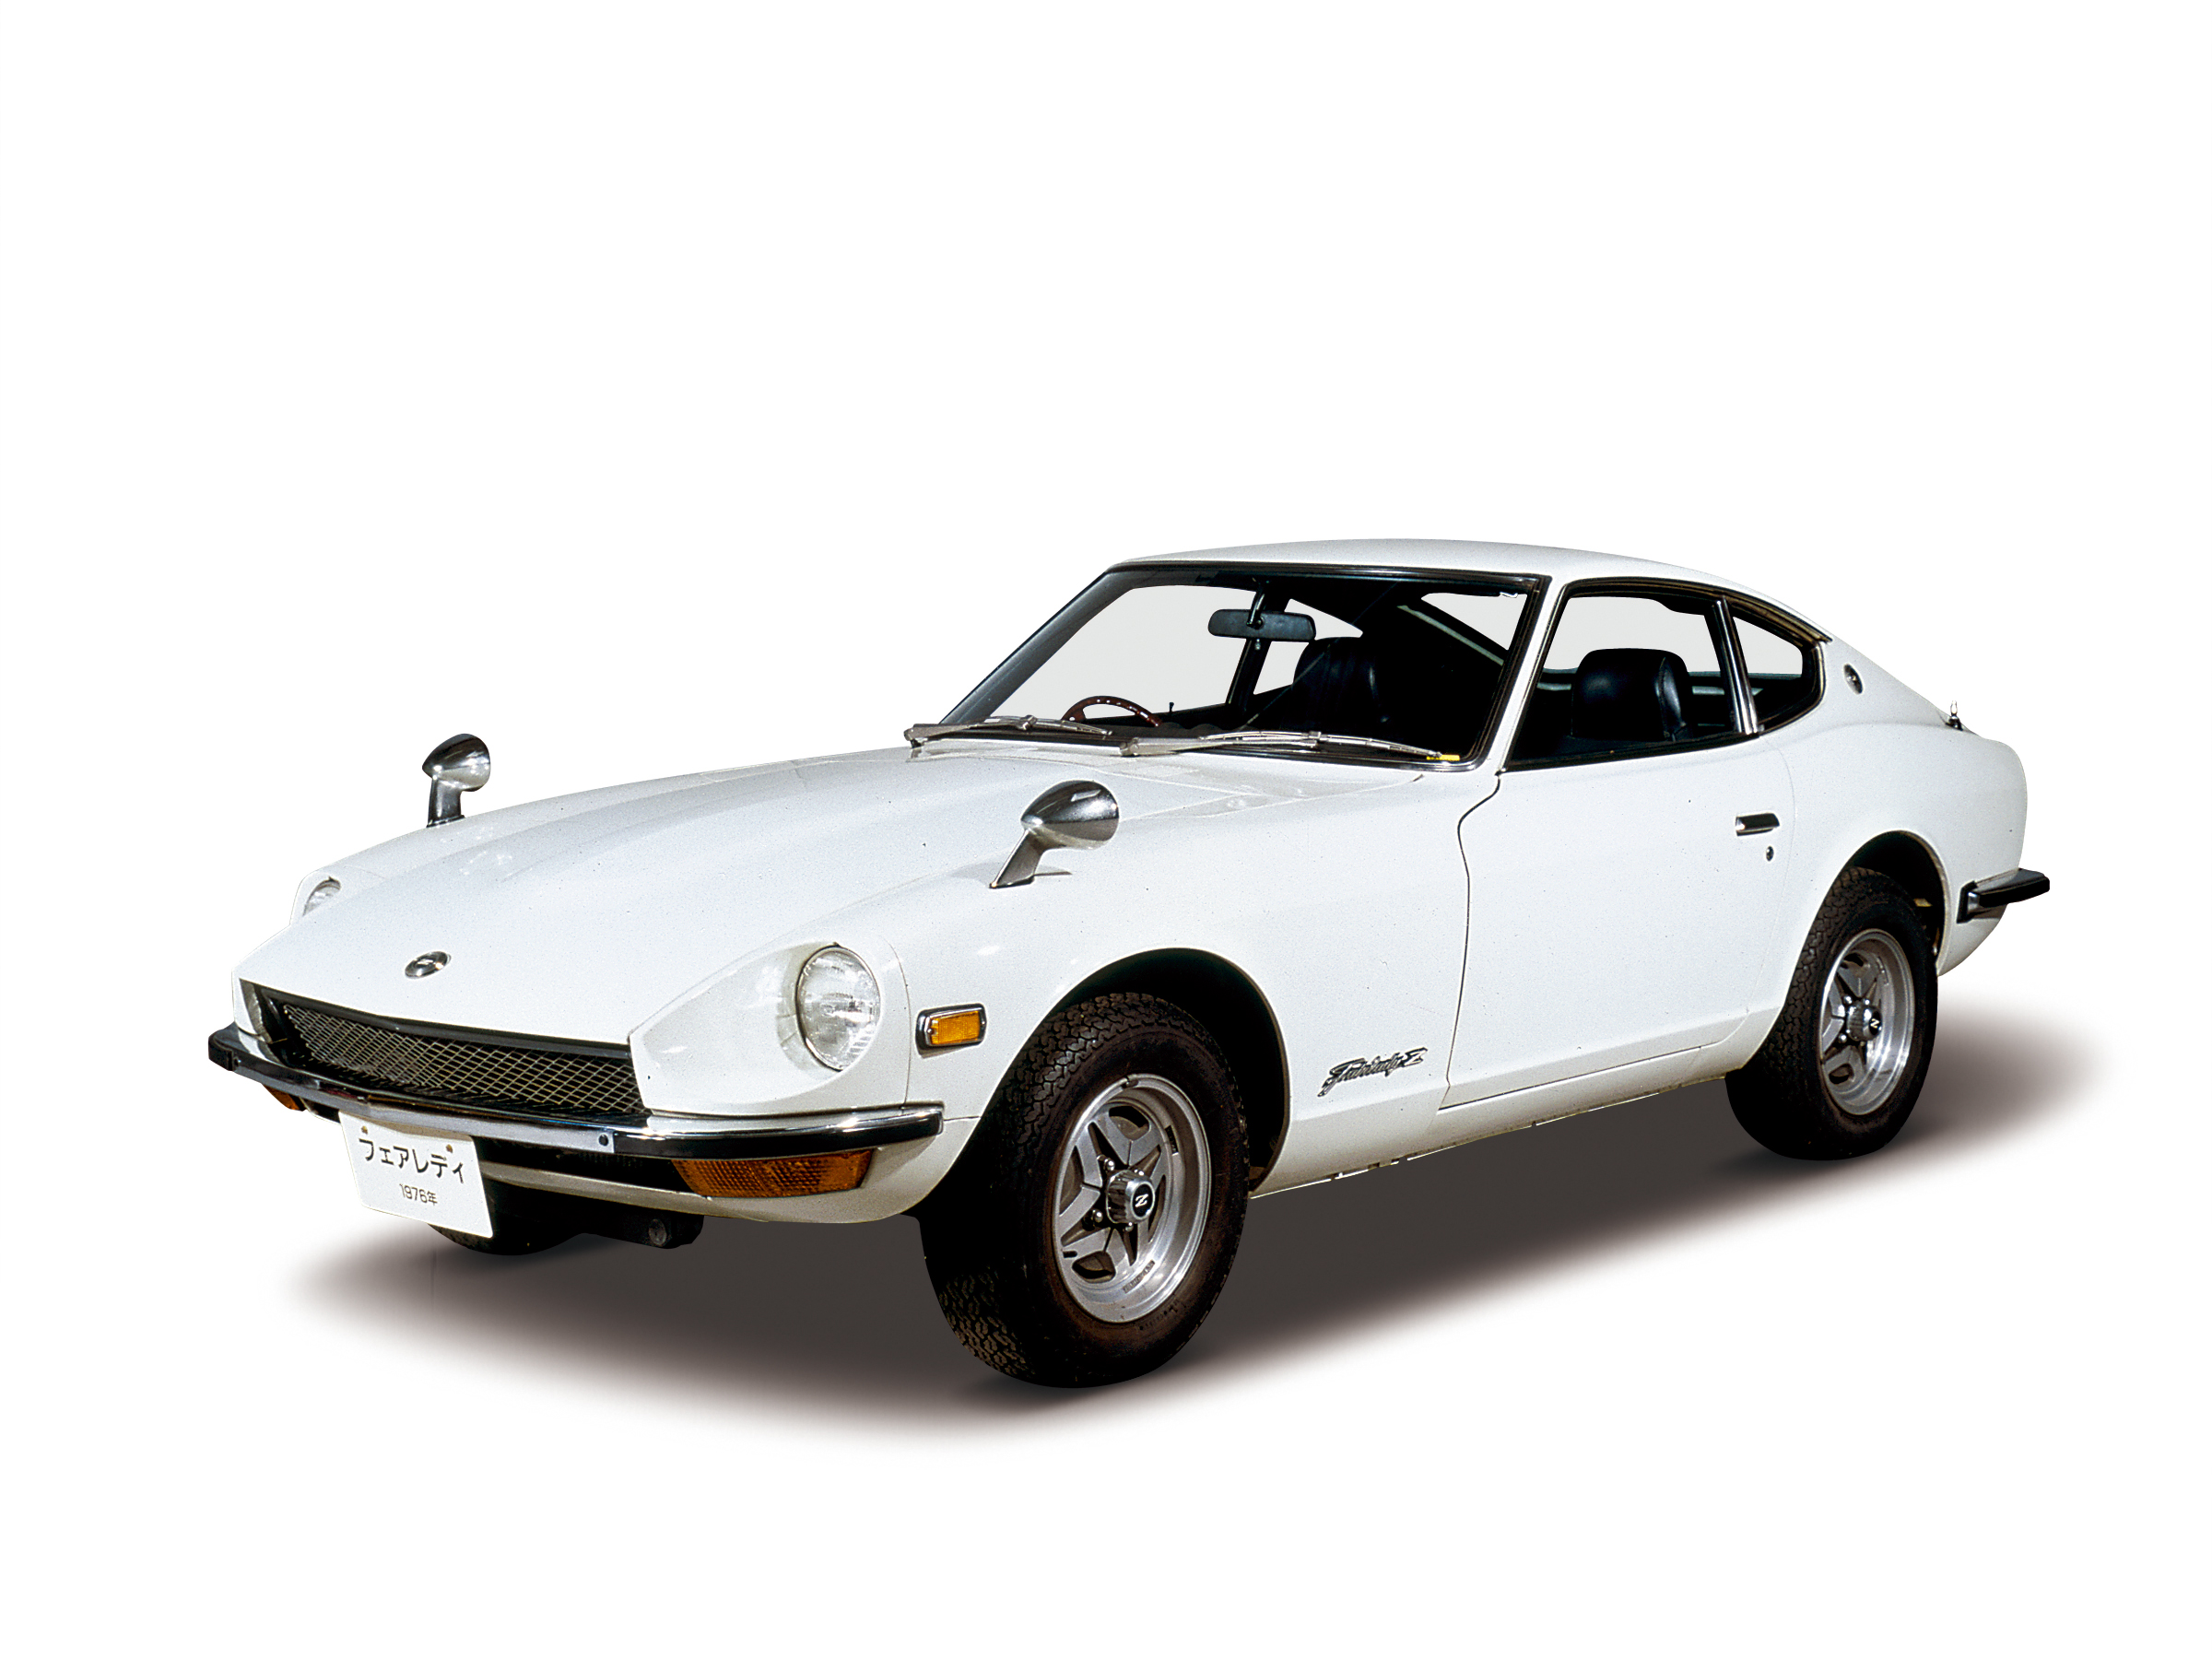 Nissan Heritage Collection Fairlady Z T